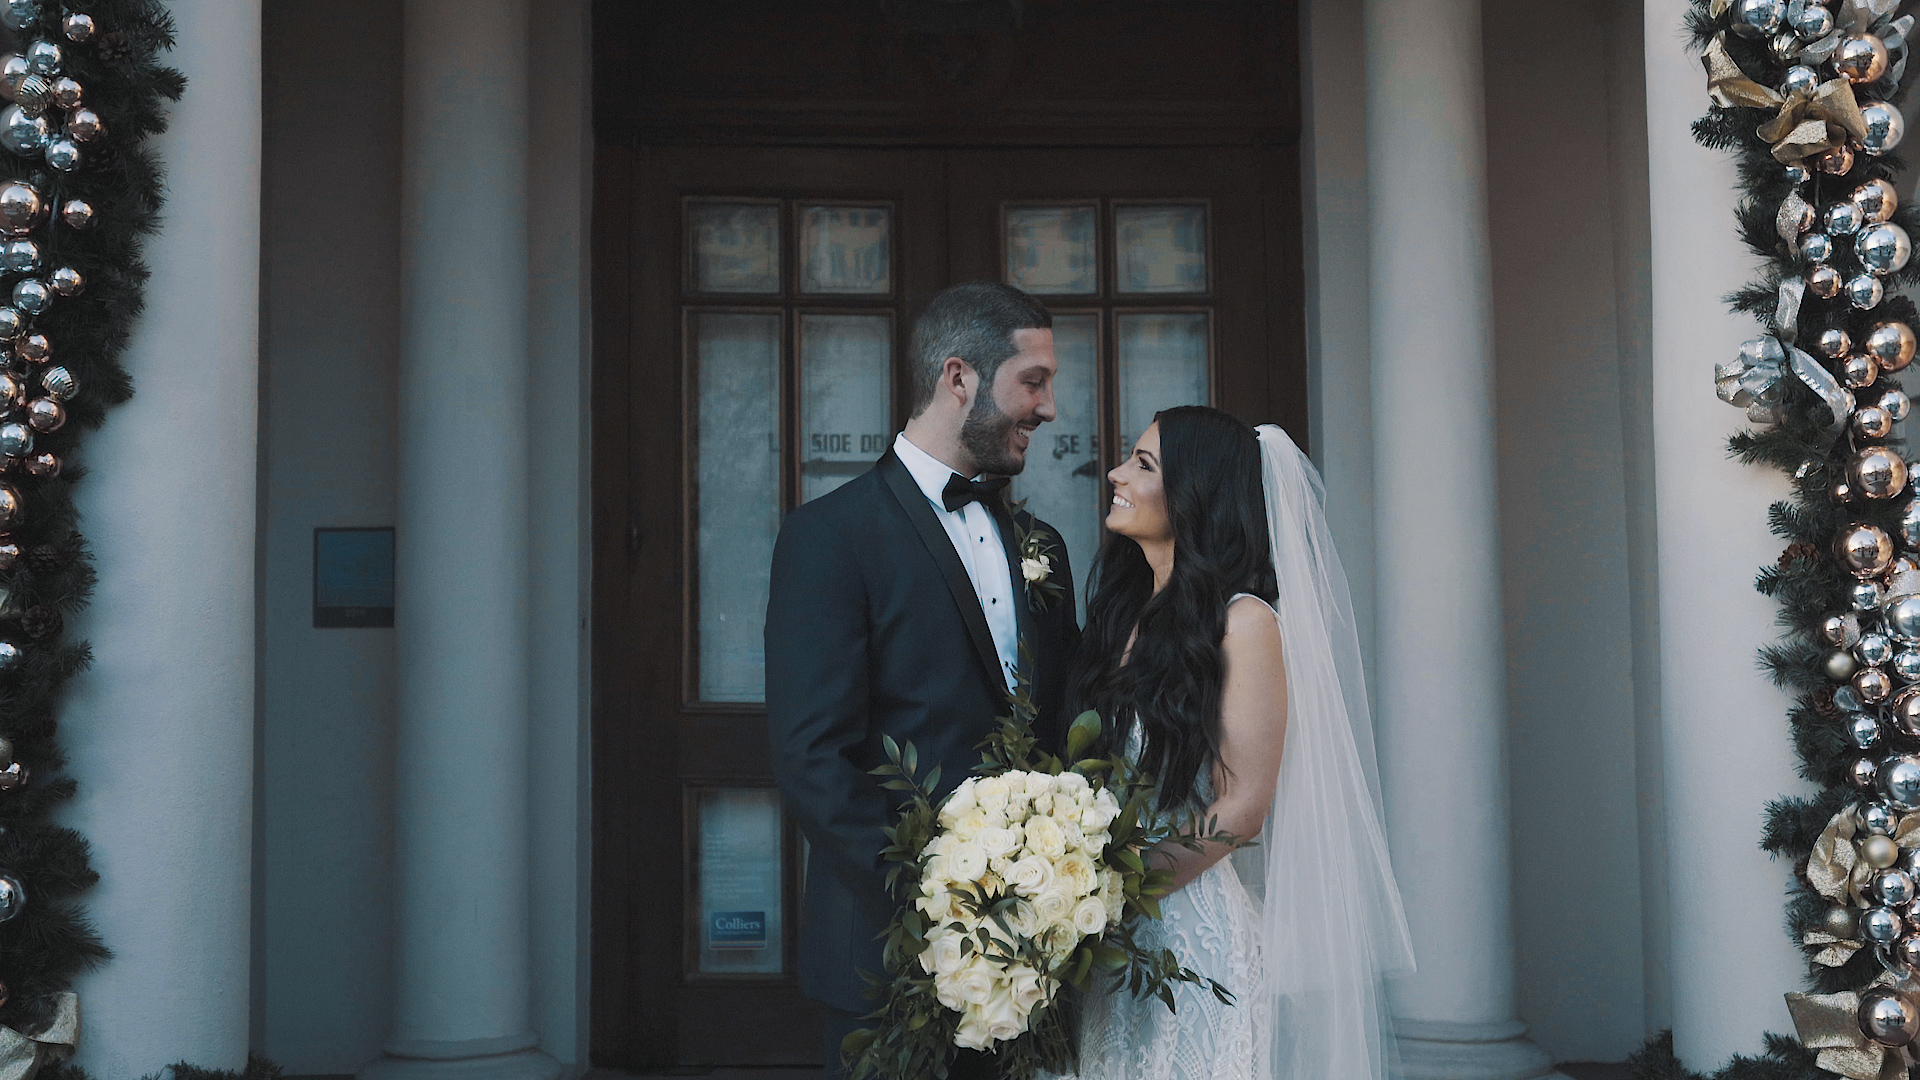 Nicole + Jack   Coral Gables, Florida   The Colonnade Hotel